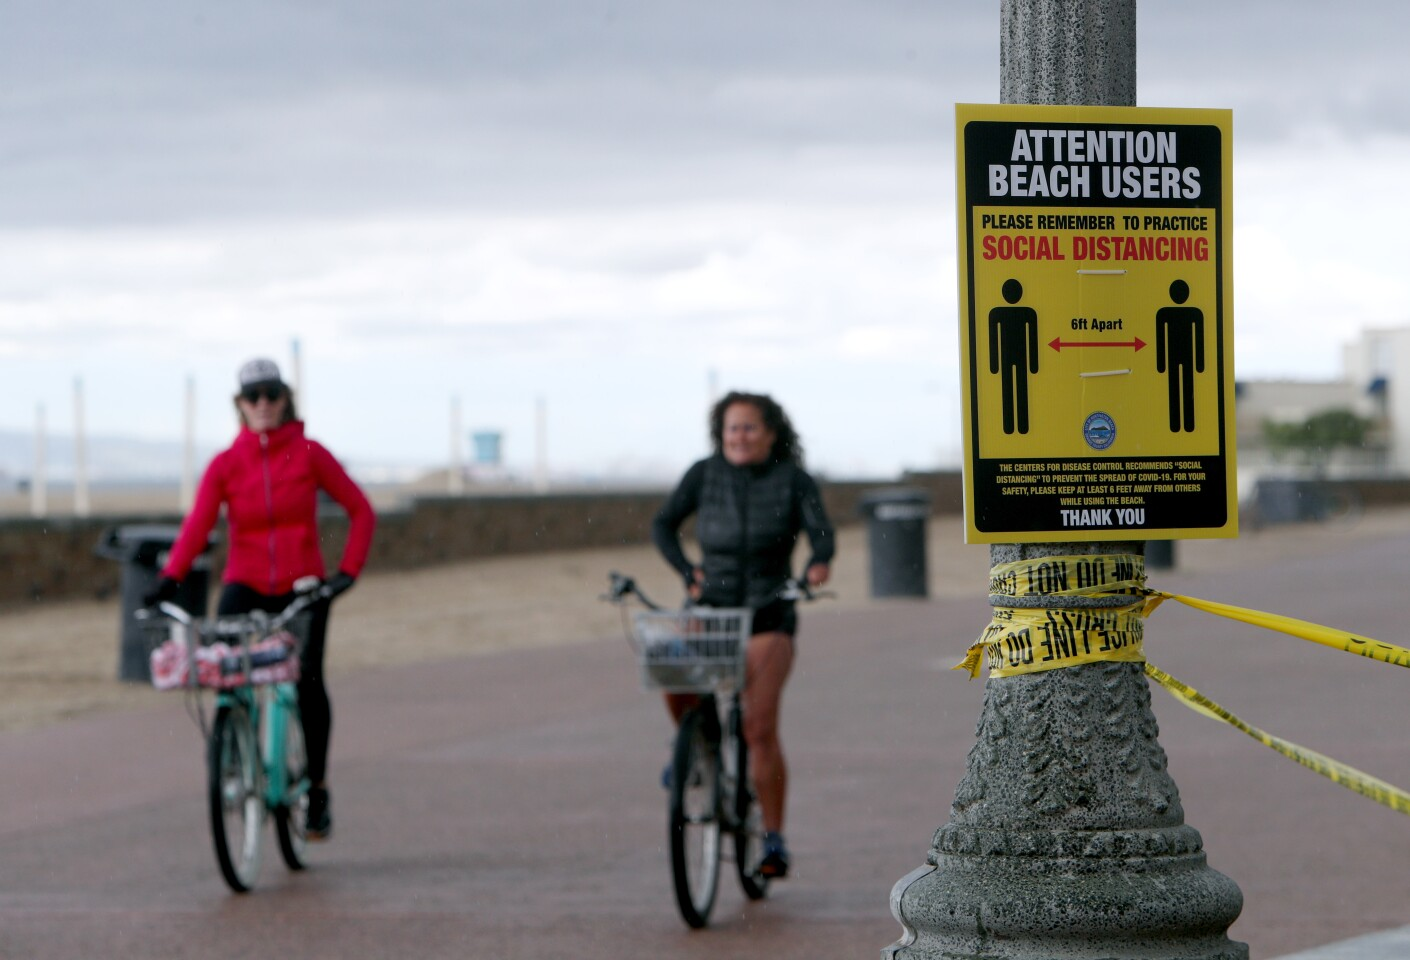 Bicycle riders practice social distancing just north of the Huntington Beach pier, in Huntington Beach on Friday, April 10, 2020.